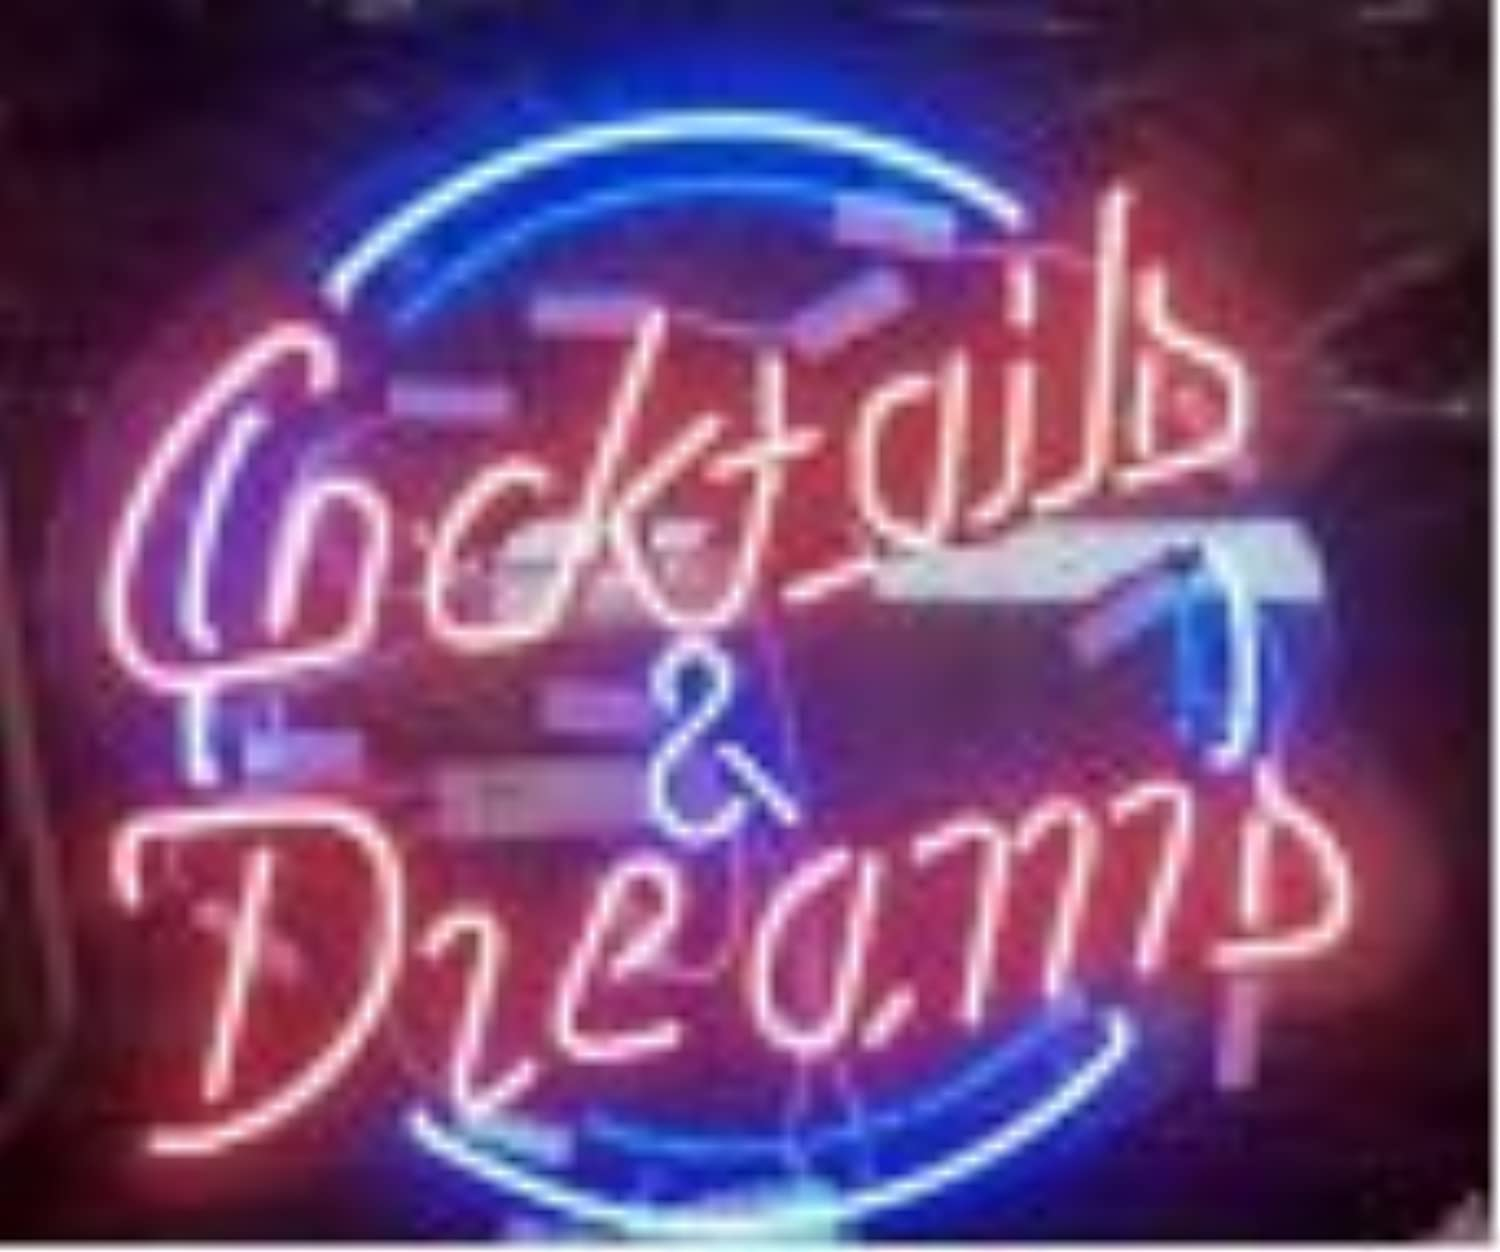 Cocktails and Dreams Hand Crafted Glass Tube neon Sign 17(w) insx13(h) ins Neon Sign Lights Beer Bar Sign